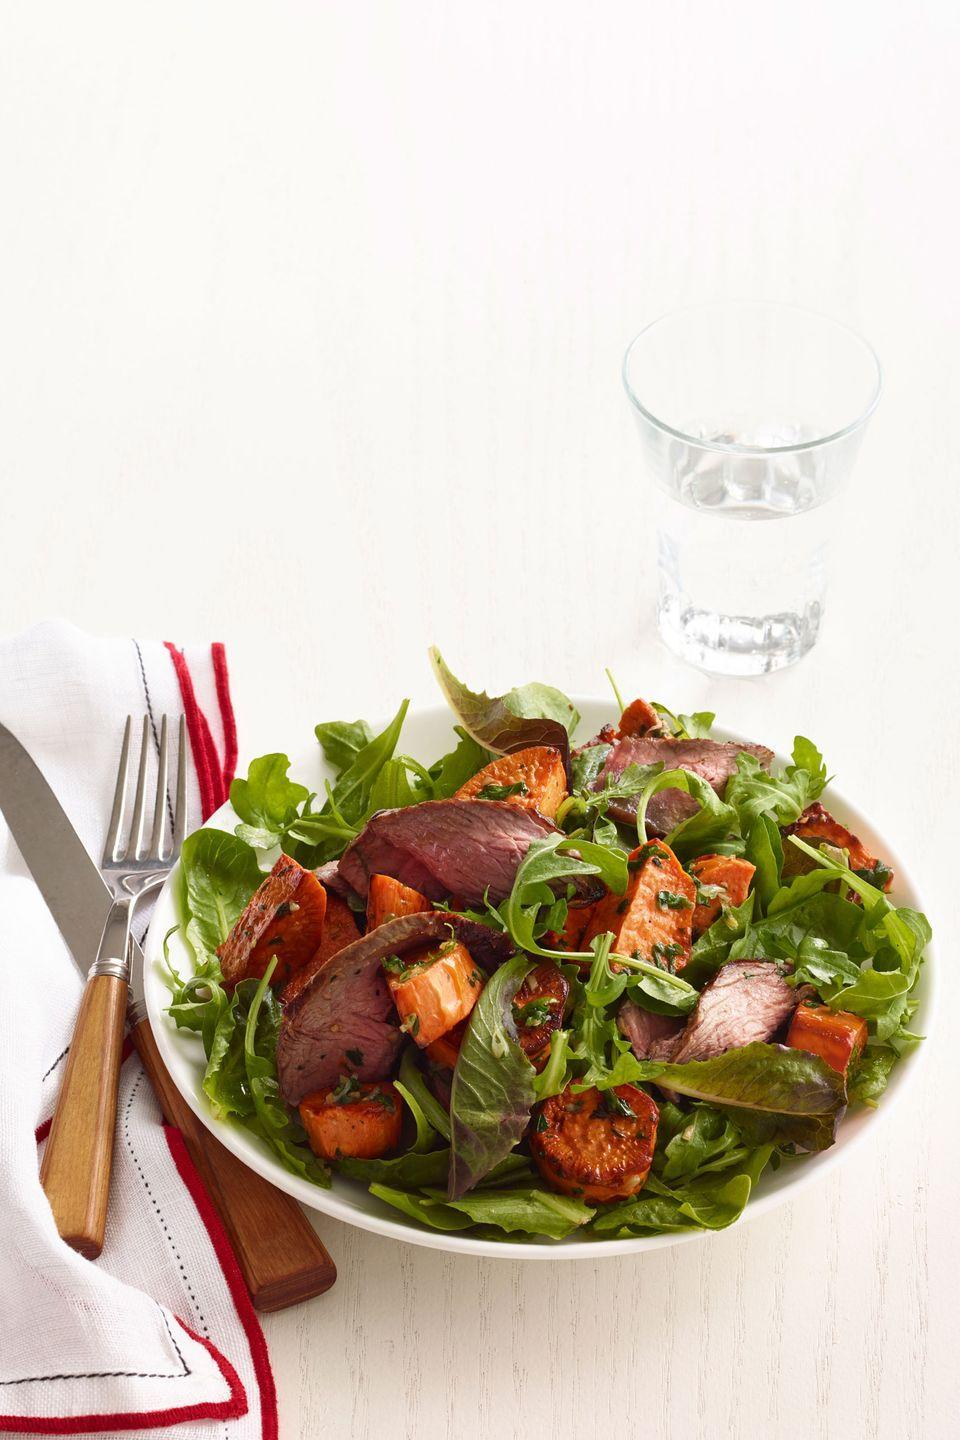 """<p>To keep the portion size in check, this recipe calls for 3 ounces of steak per person. </p><p><em><a href=""""https://www.goodhousekeeping.com/food-recipes/a15484/arugula-sweet-potato-spiced-steak-salad-recipe-wdy0214/"""" rel=""""nofollow noopener"""" target=""""_blank"""" data-ylk=""""slk:Get the recipe for Arugula, Sweet Potato, and Spiced Steak Salad »"""" class=""""link rapid-noclick-resp"""">Get the recipe for Arugula, Sweet Potato, and Spiced Steak Salad »</a></em><br></p>"""